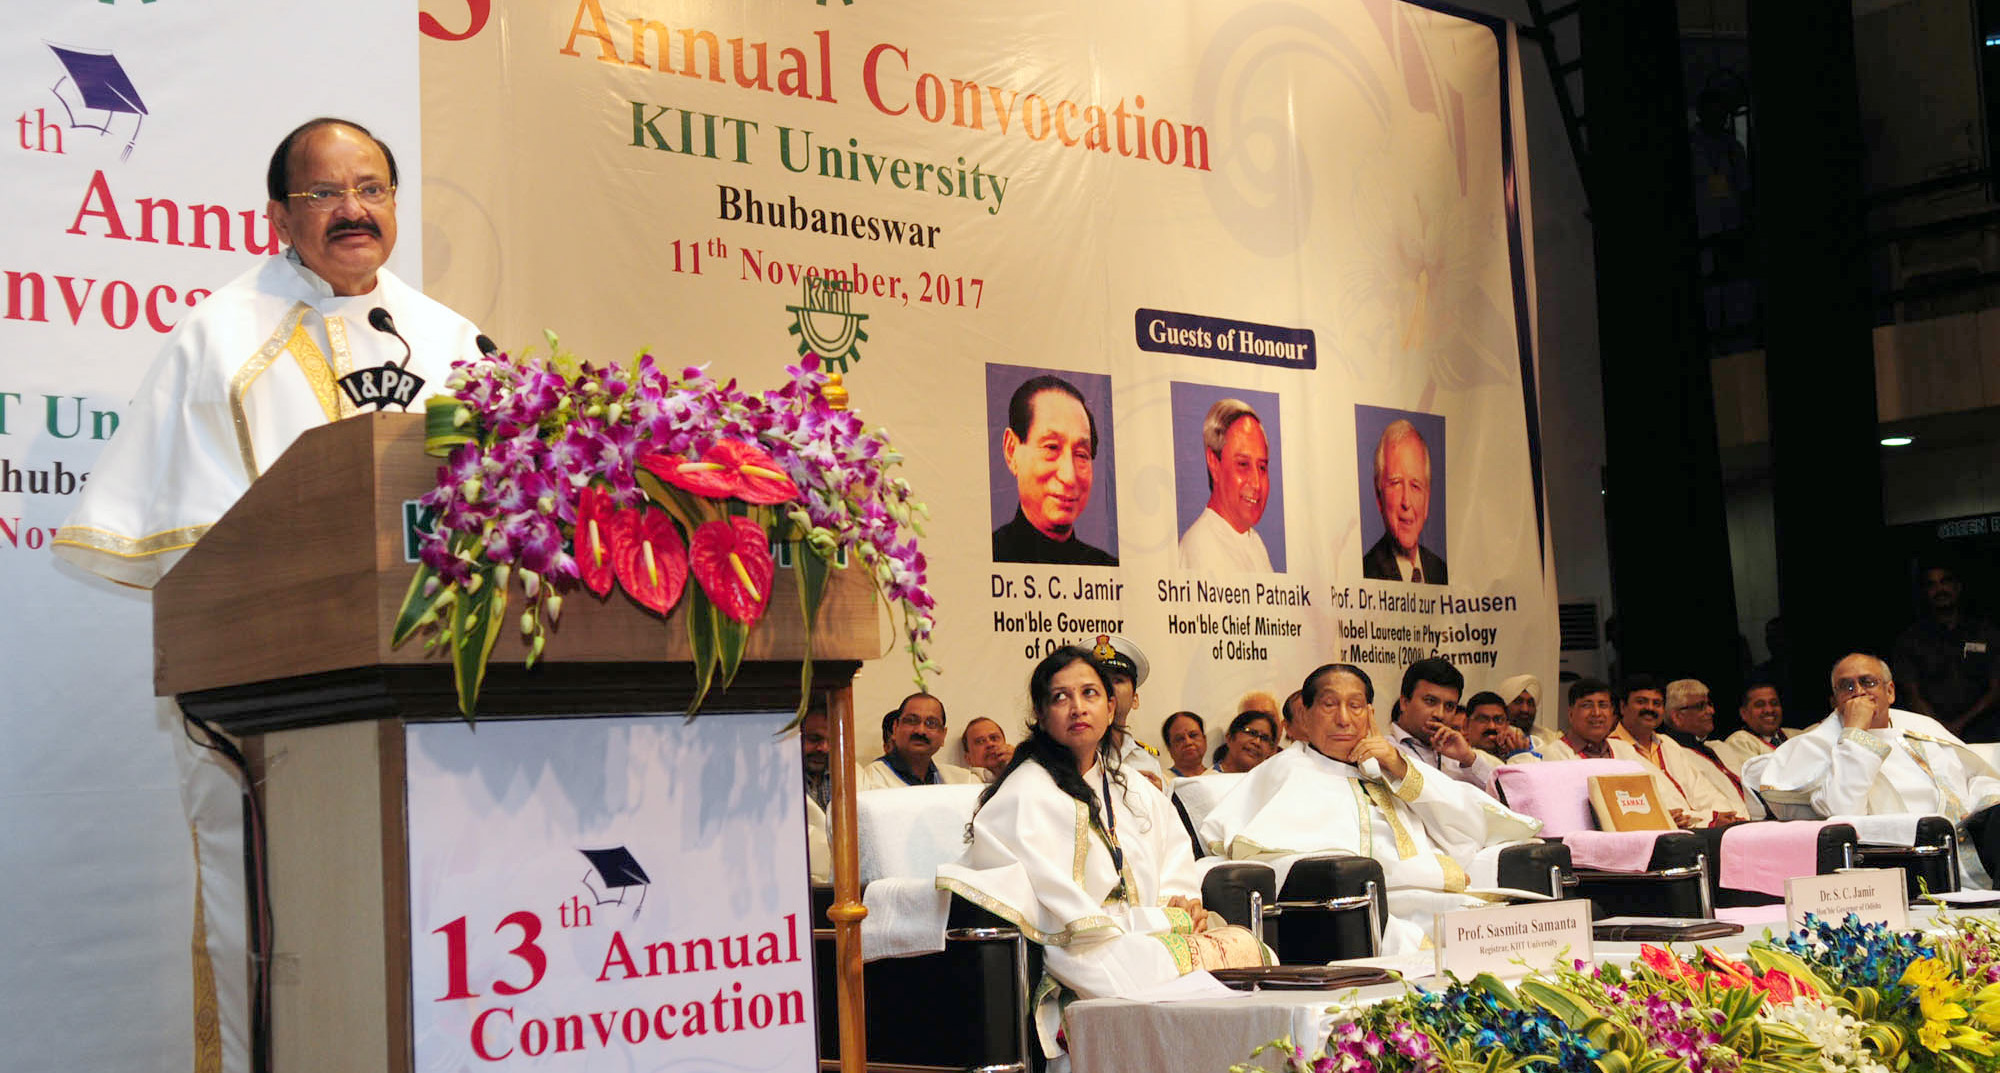 The Vice President, Shri M. Venkaiah Naidu delivering the convocational address of the 13th Annual Convocation of Kalinga Institute of Industrial Technology University, in Bhubaneswar on November 11, 2017. The Governor of Odisha, Shri S.C. Jamir is also seen.